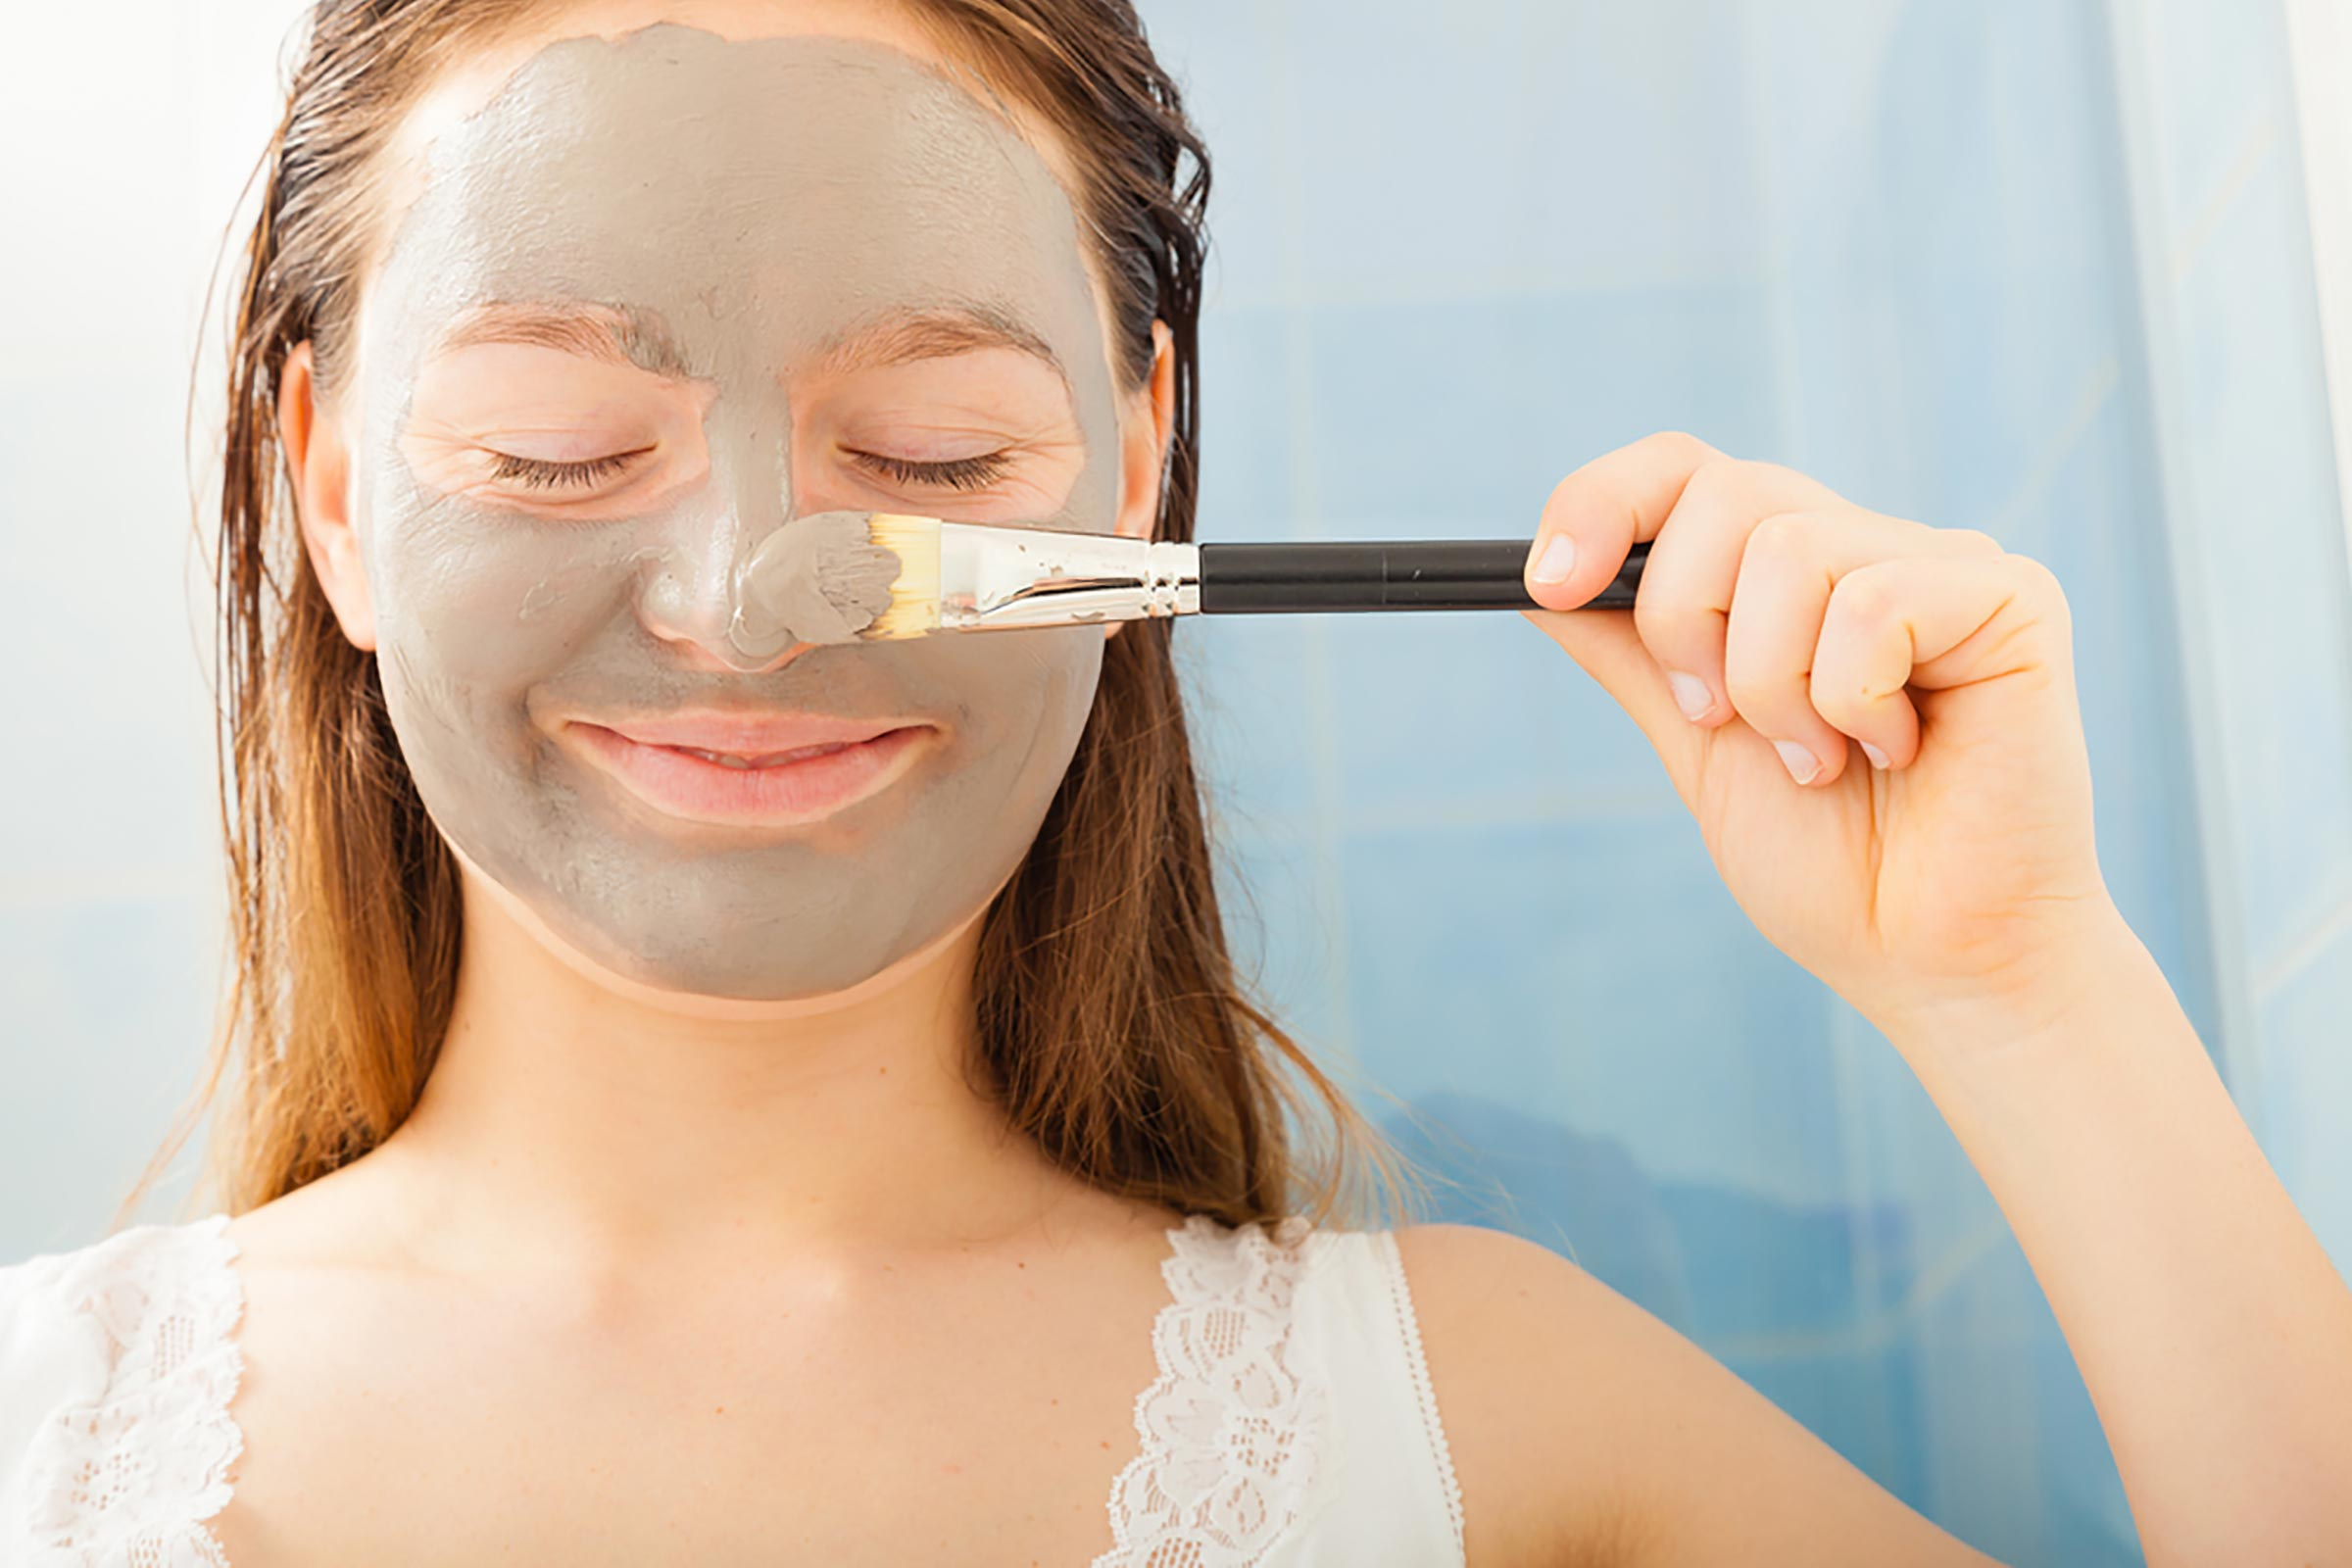 DIY-Facial-9-Treatments-You-Can-Safely-D